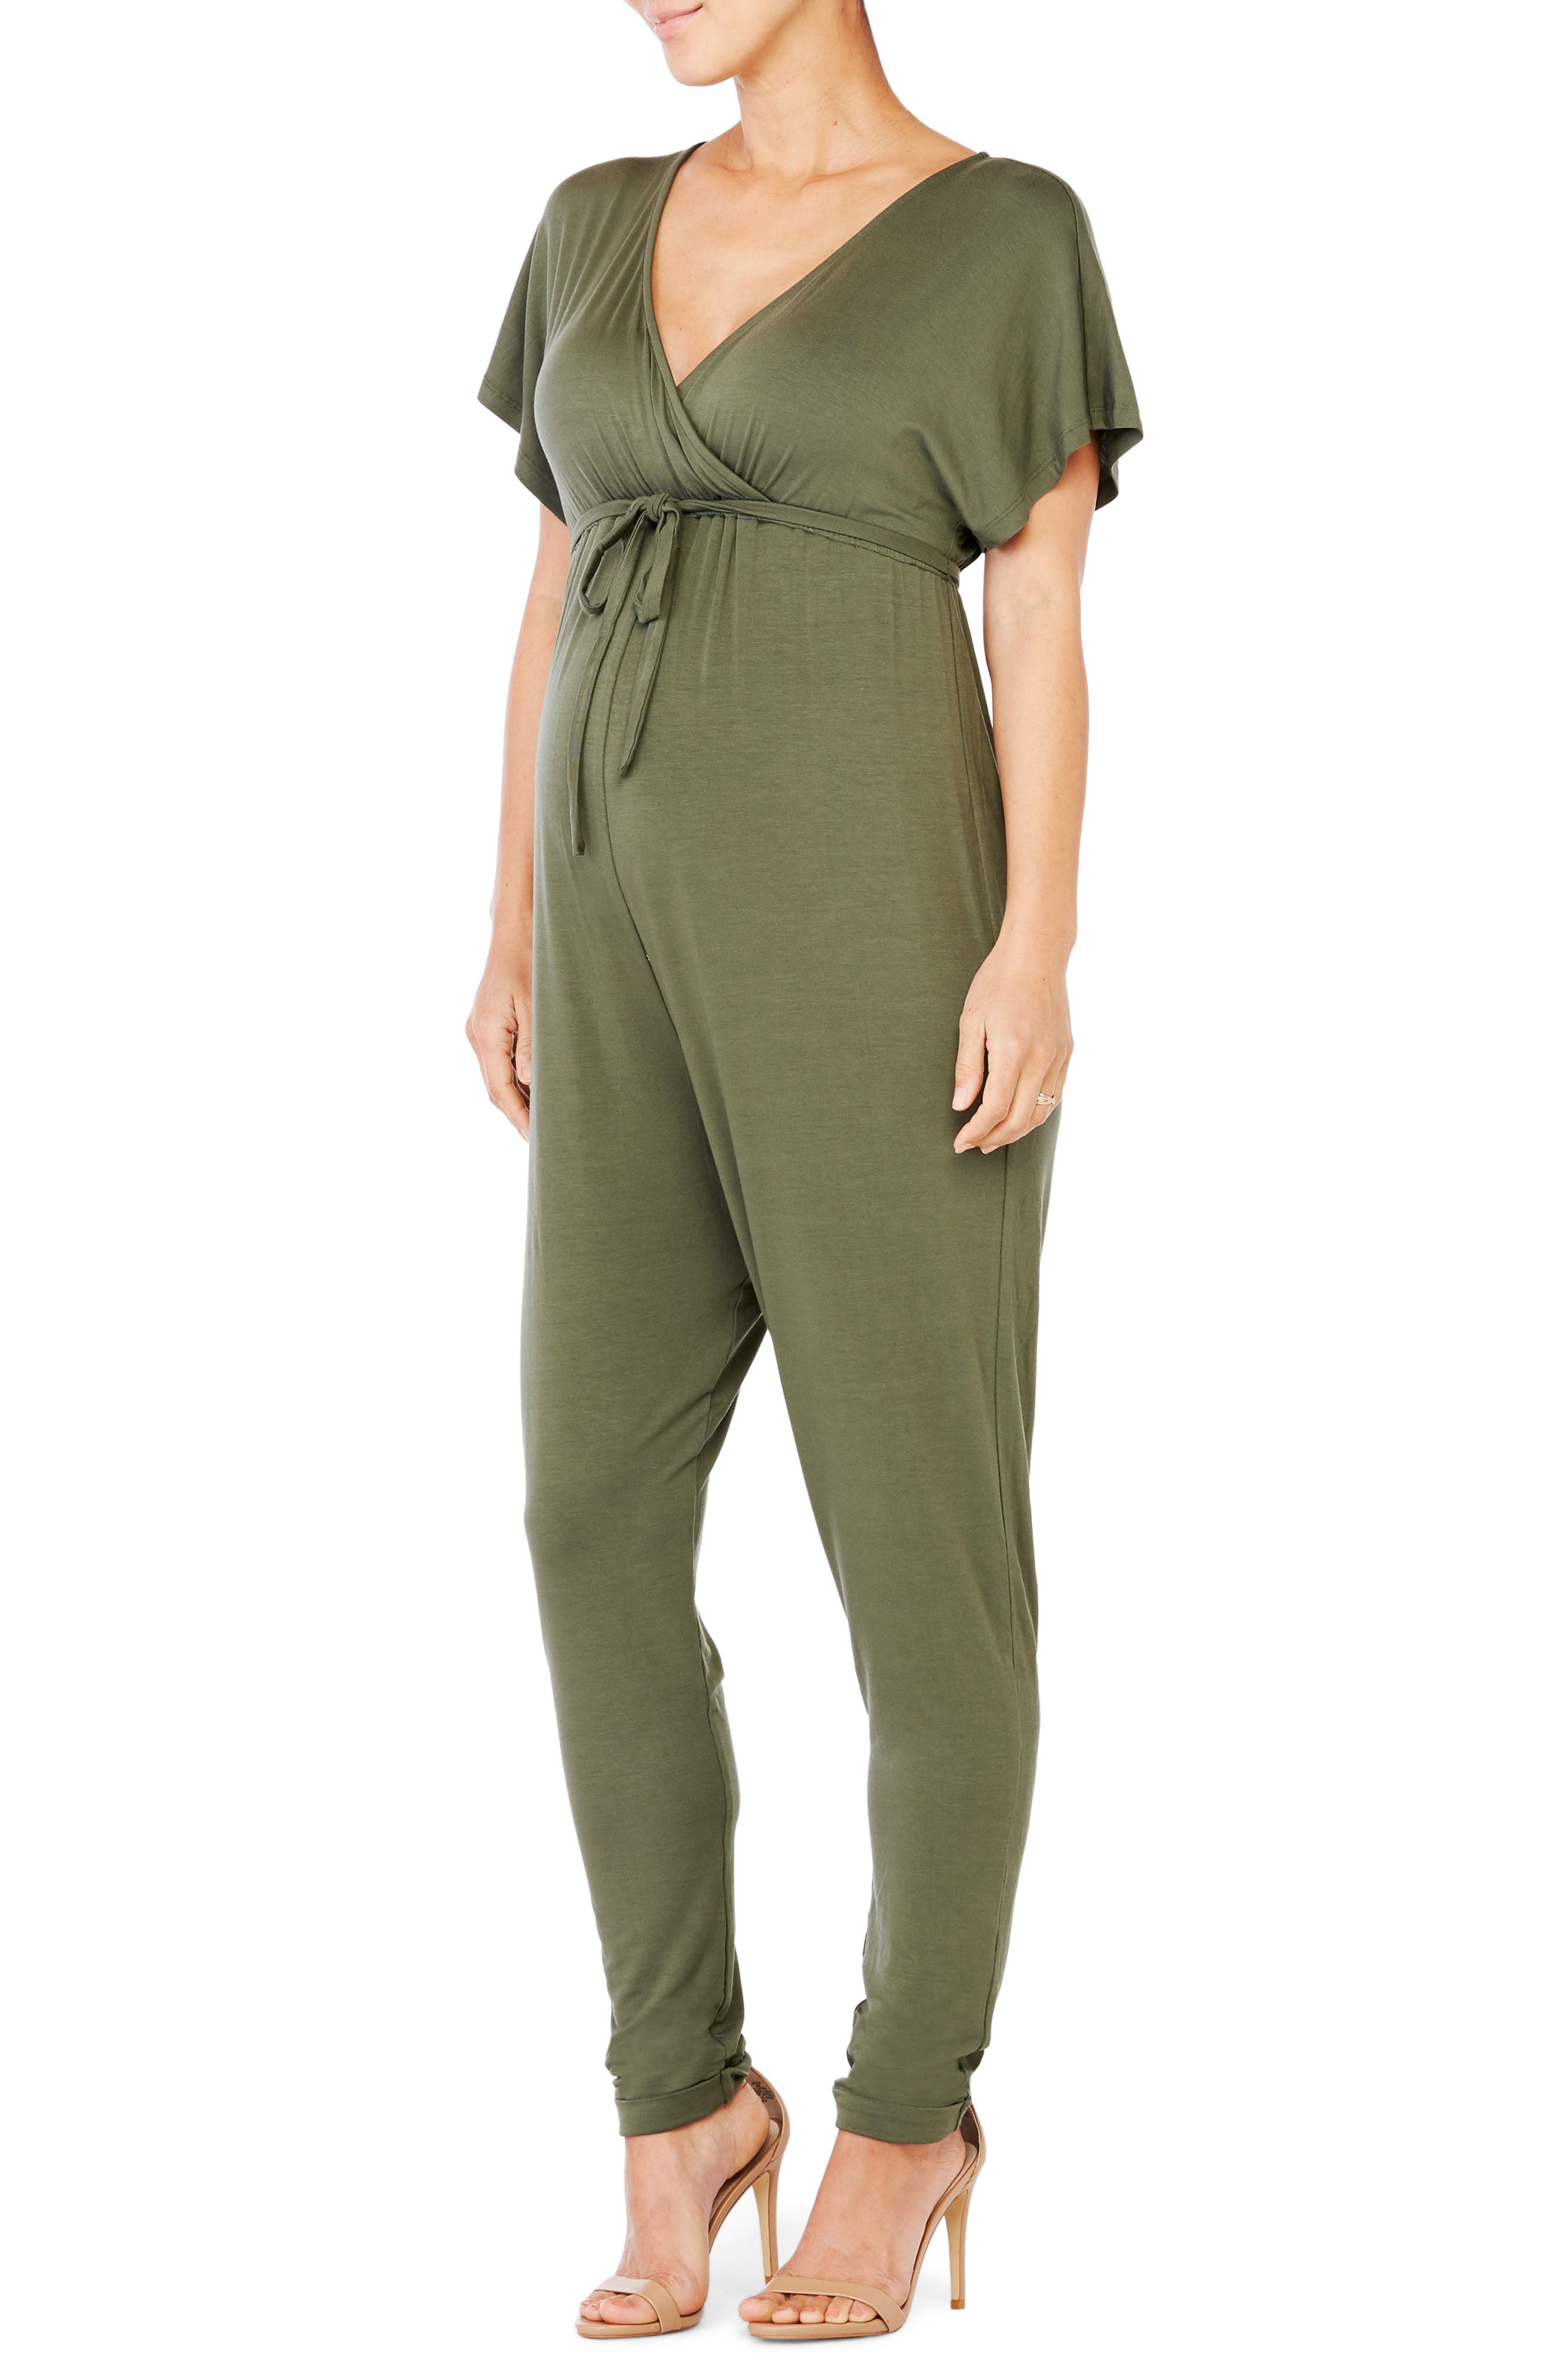 Crossover Maternity Jumpsuit,                             Alternate thumbnail 3, color,                             OLIVE